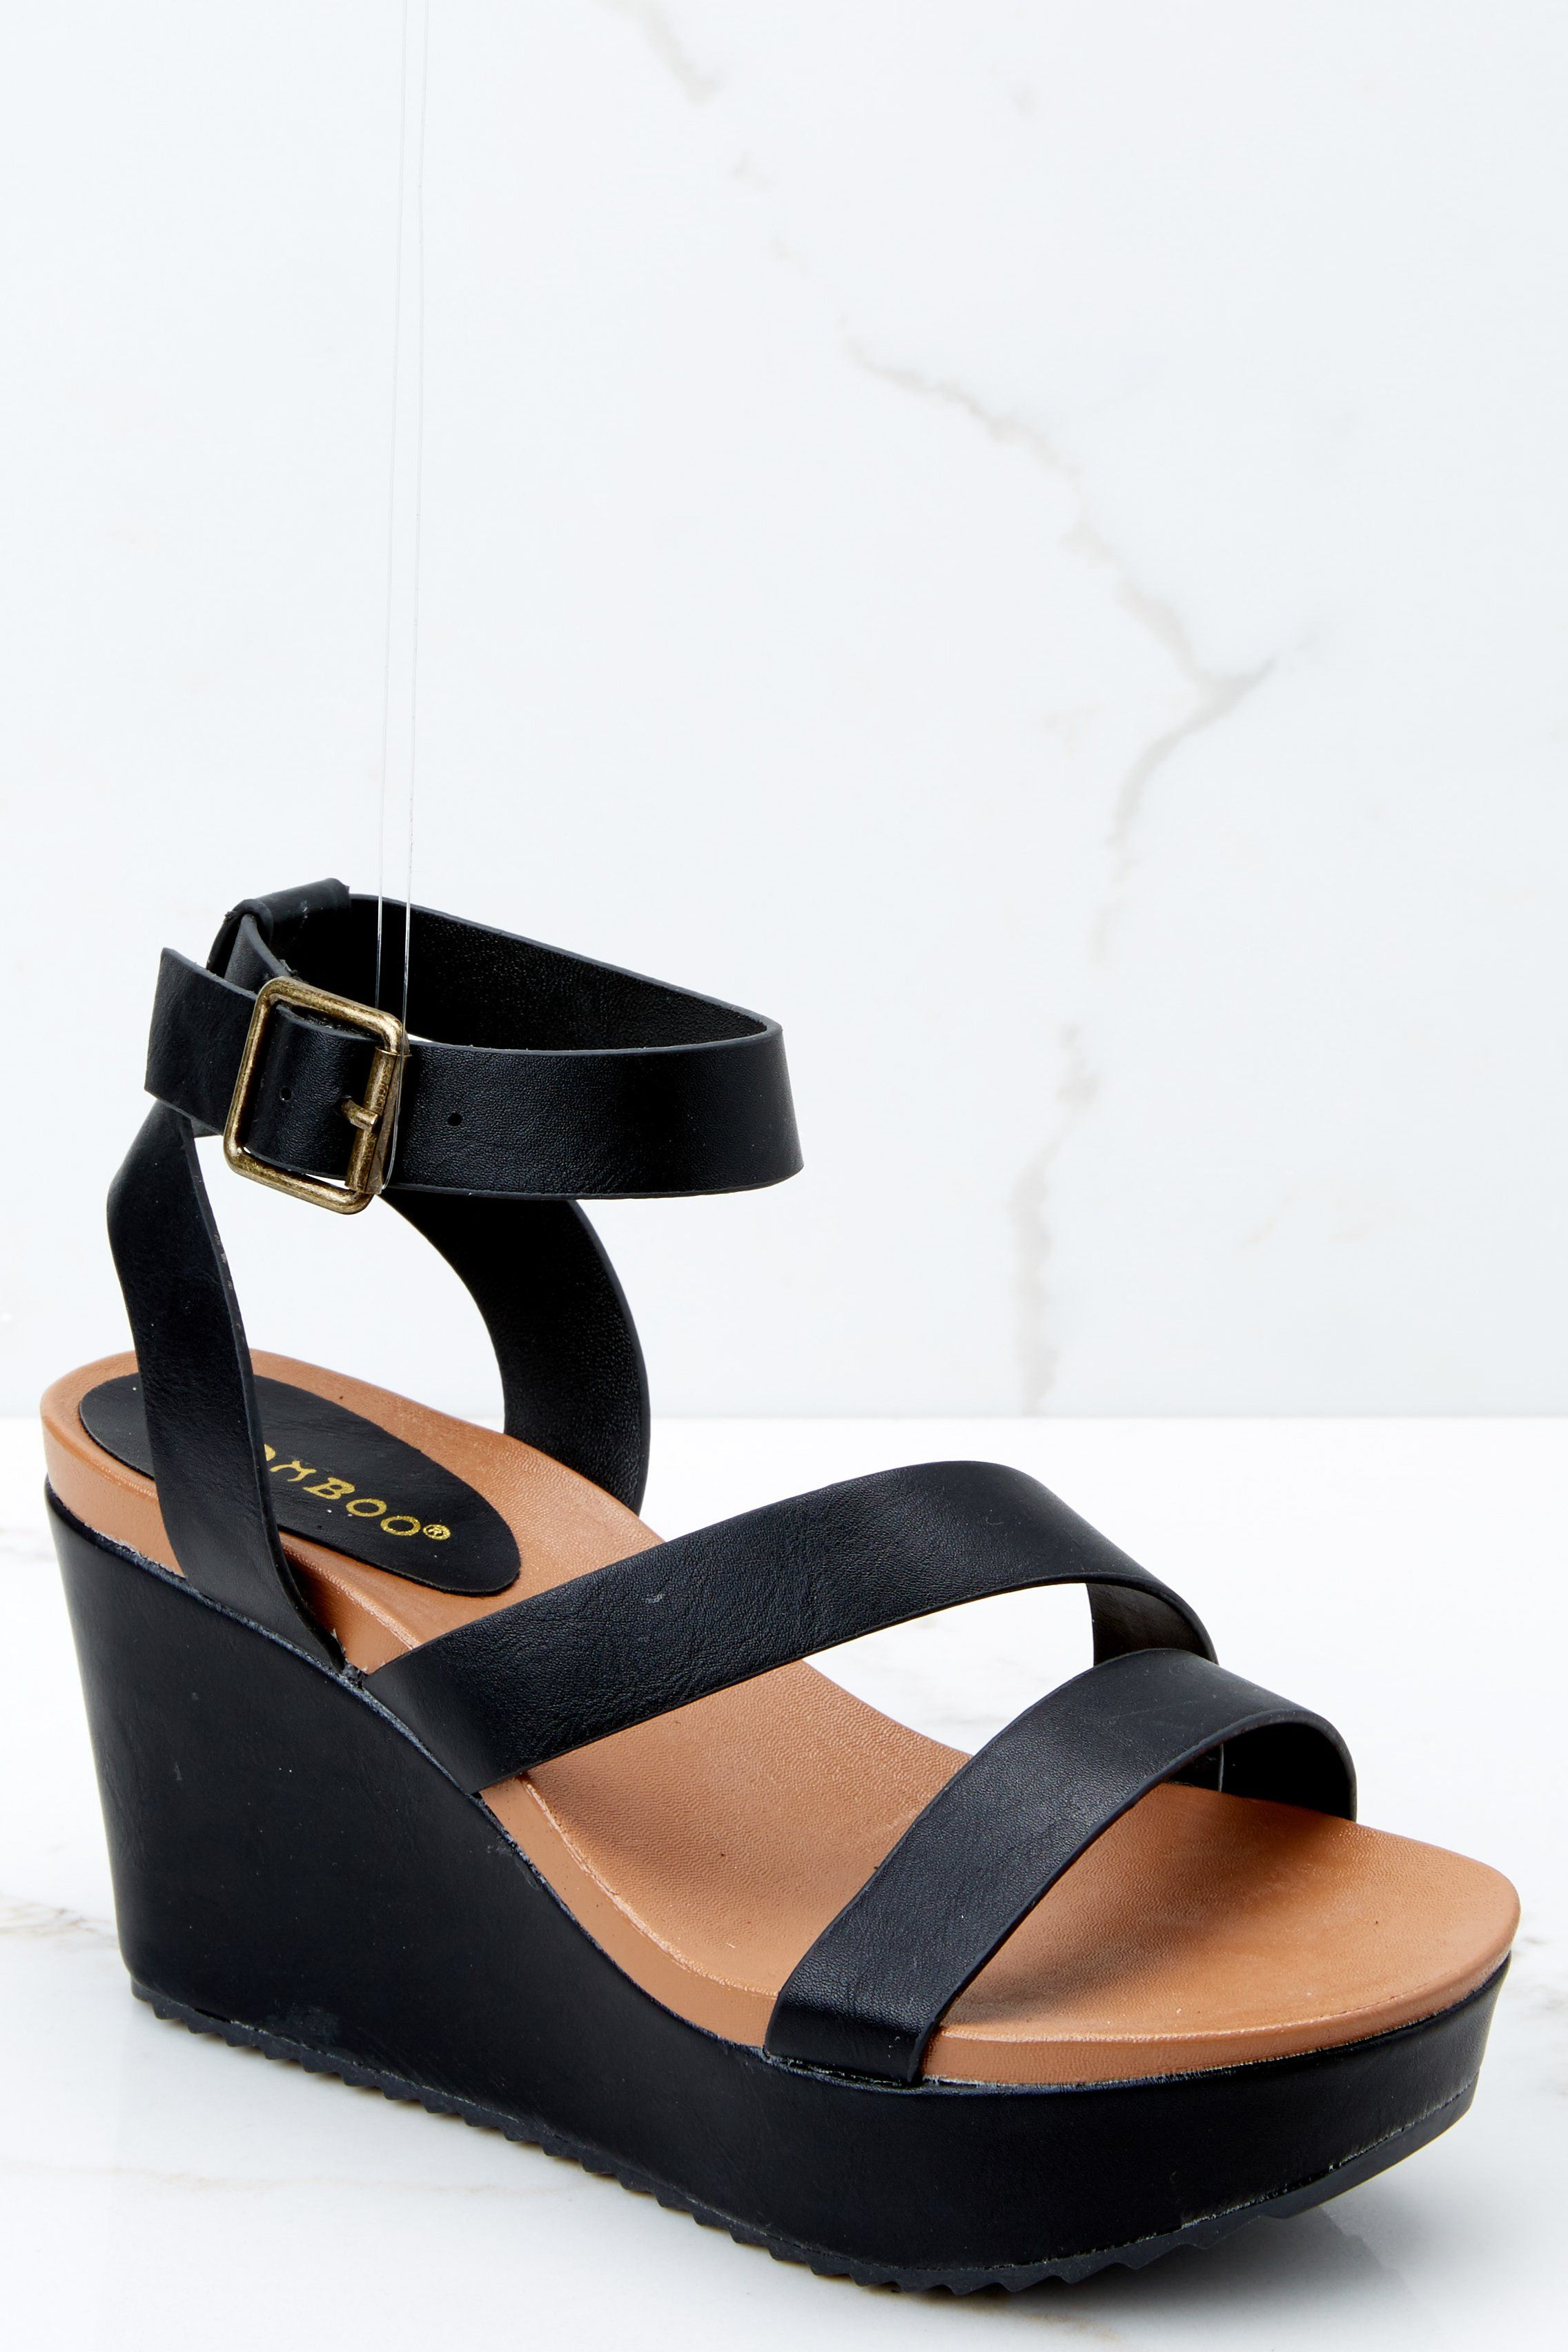 566f6df03a Chic Black Wedges - Trendy Black Wedges - Wedges - $34.00 – Red Dress  Boutique